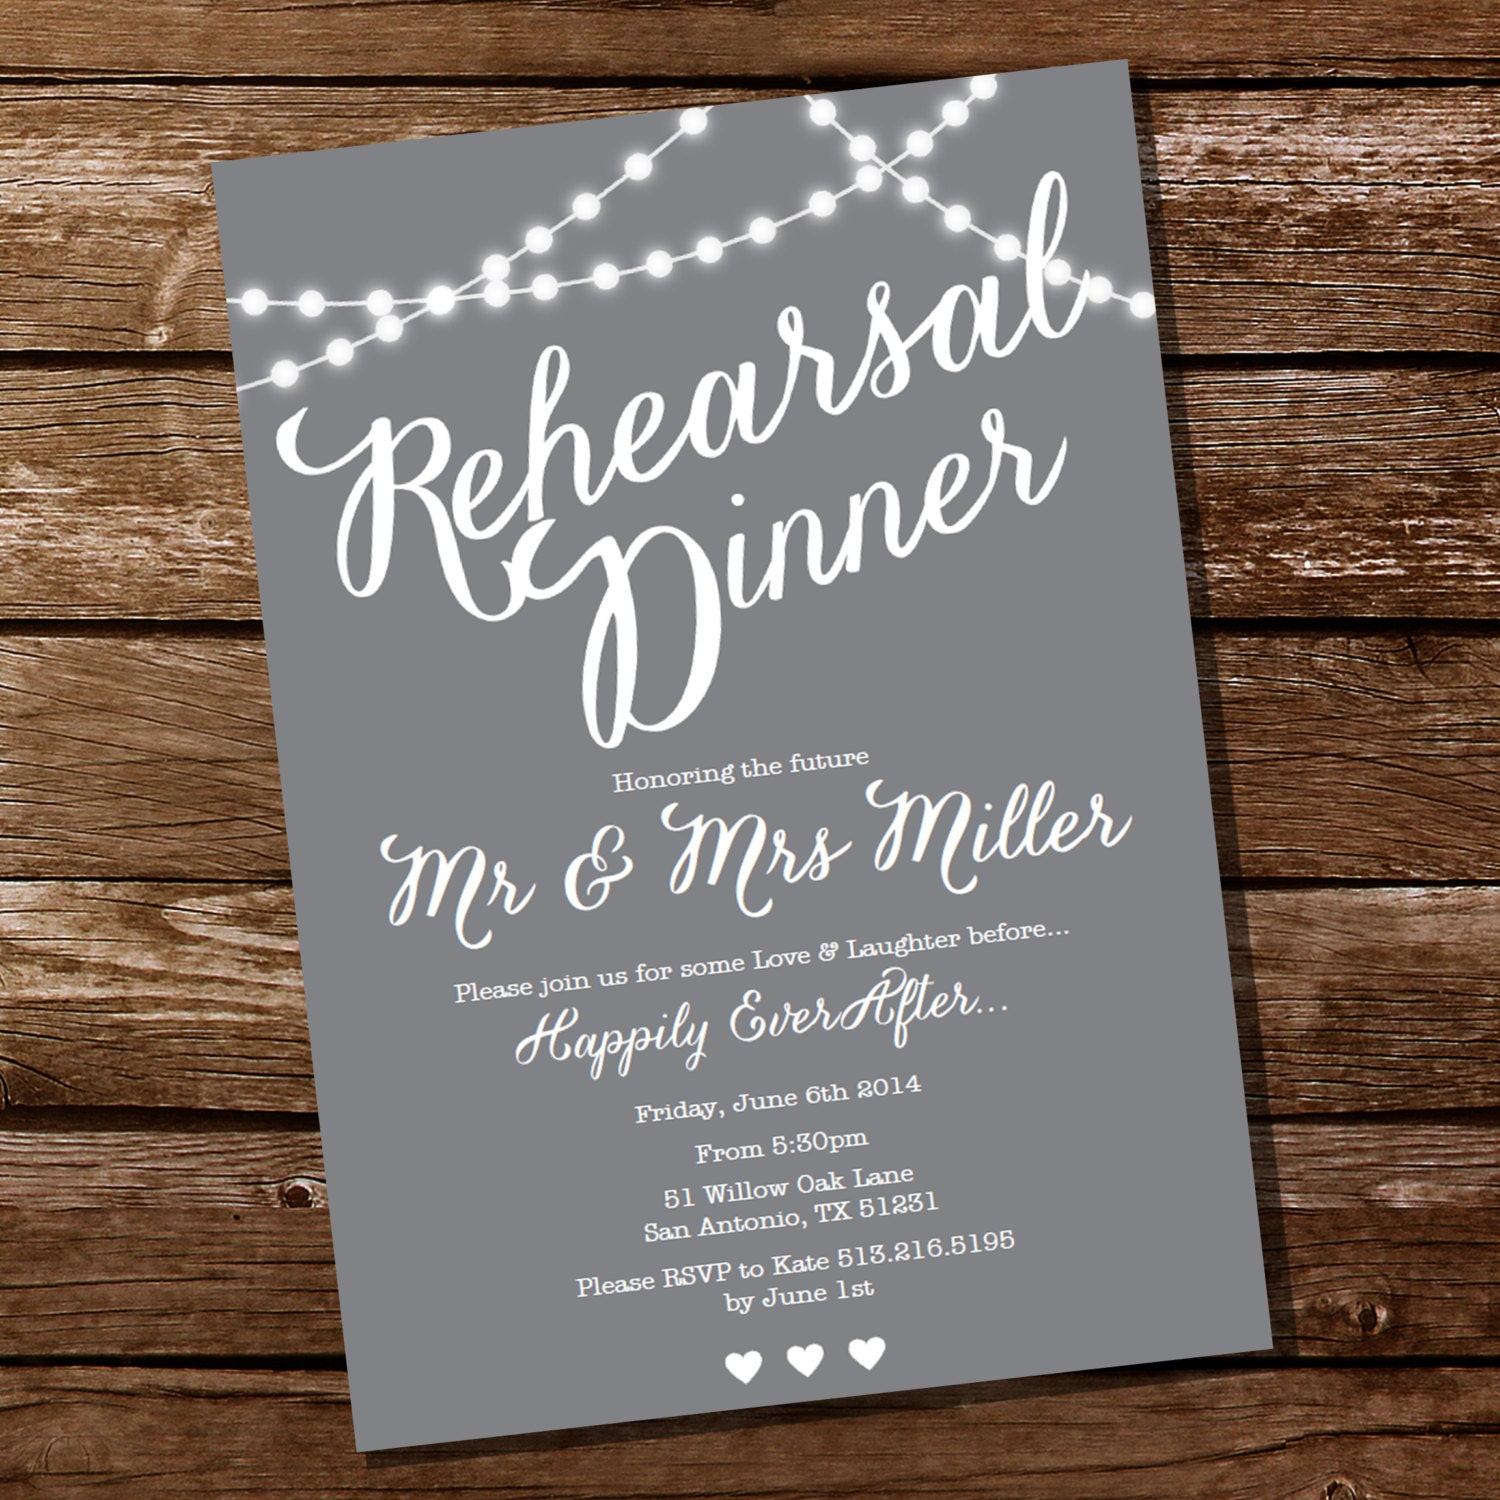 Wedding Rehearsal Invitations Templates: Gray Rehearsal Dinner Invitation Instant Download And Edit